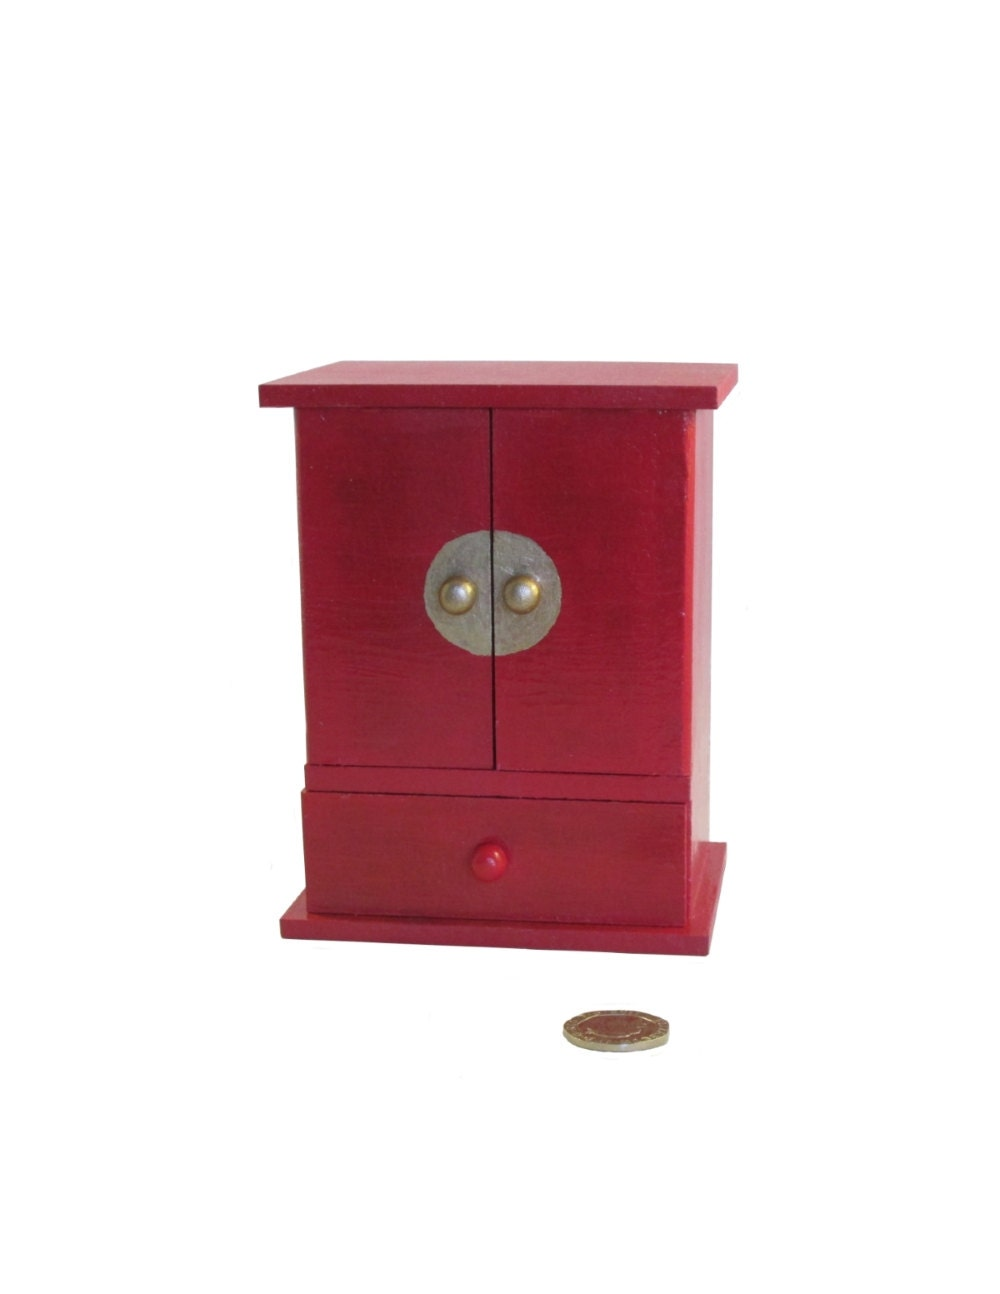 Chinese Mini Wardrobe Red Jewellery Box Gift for her Red Storage Box Decoupage Jewelry Box Chinese New Year Dolls House Furniture